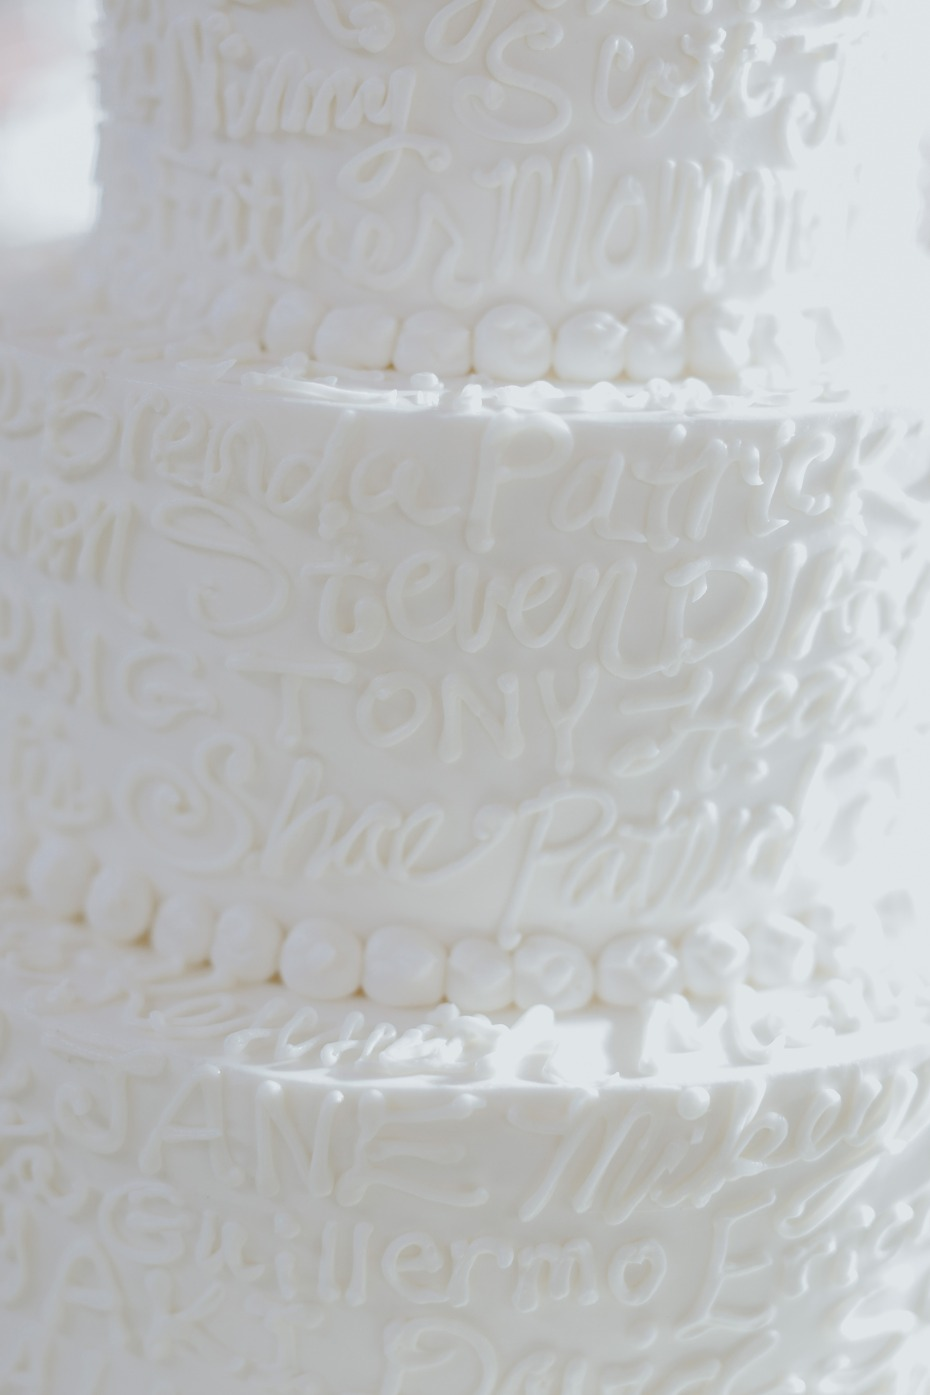 wedding cake decorated in all the guests names